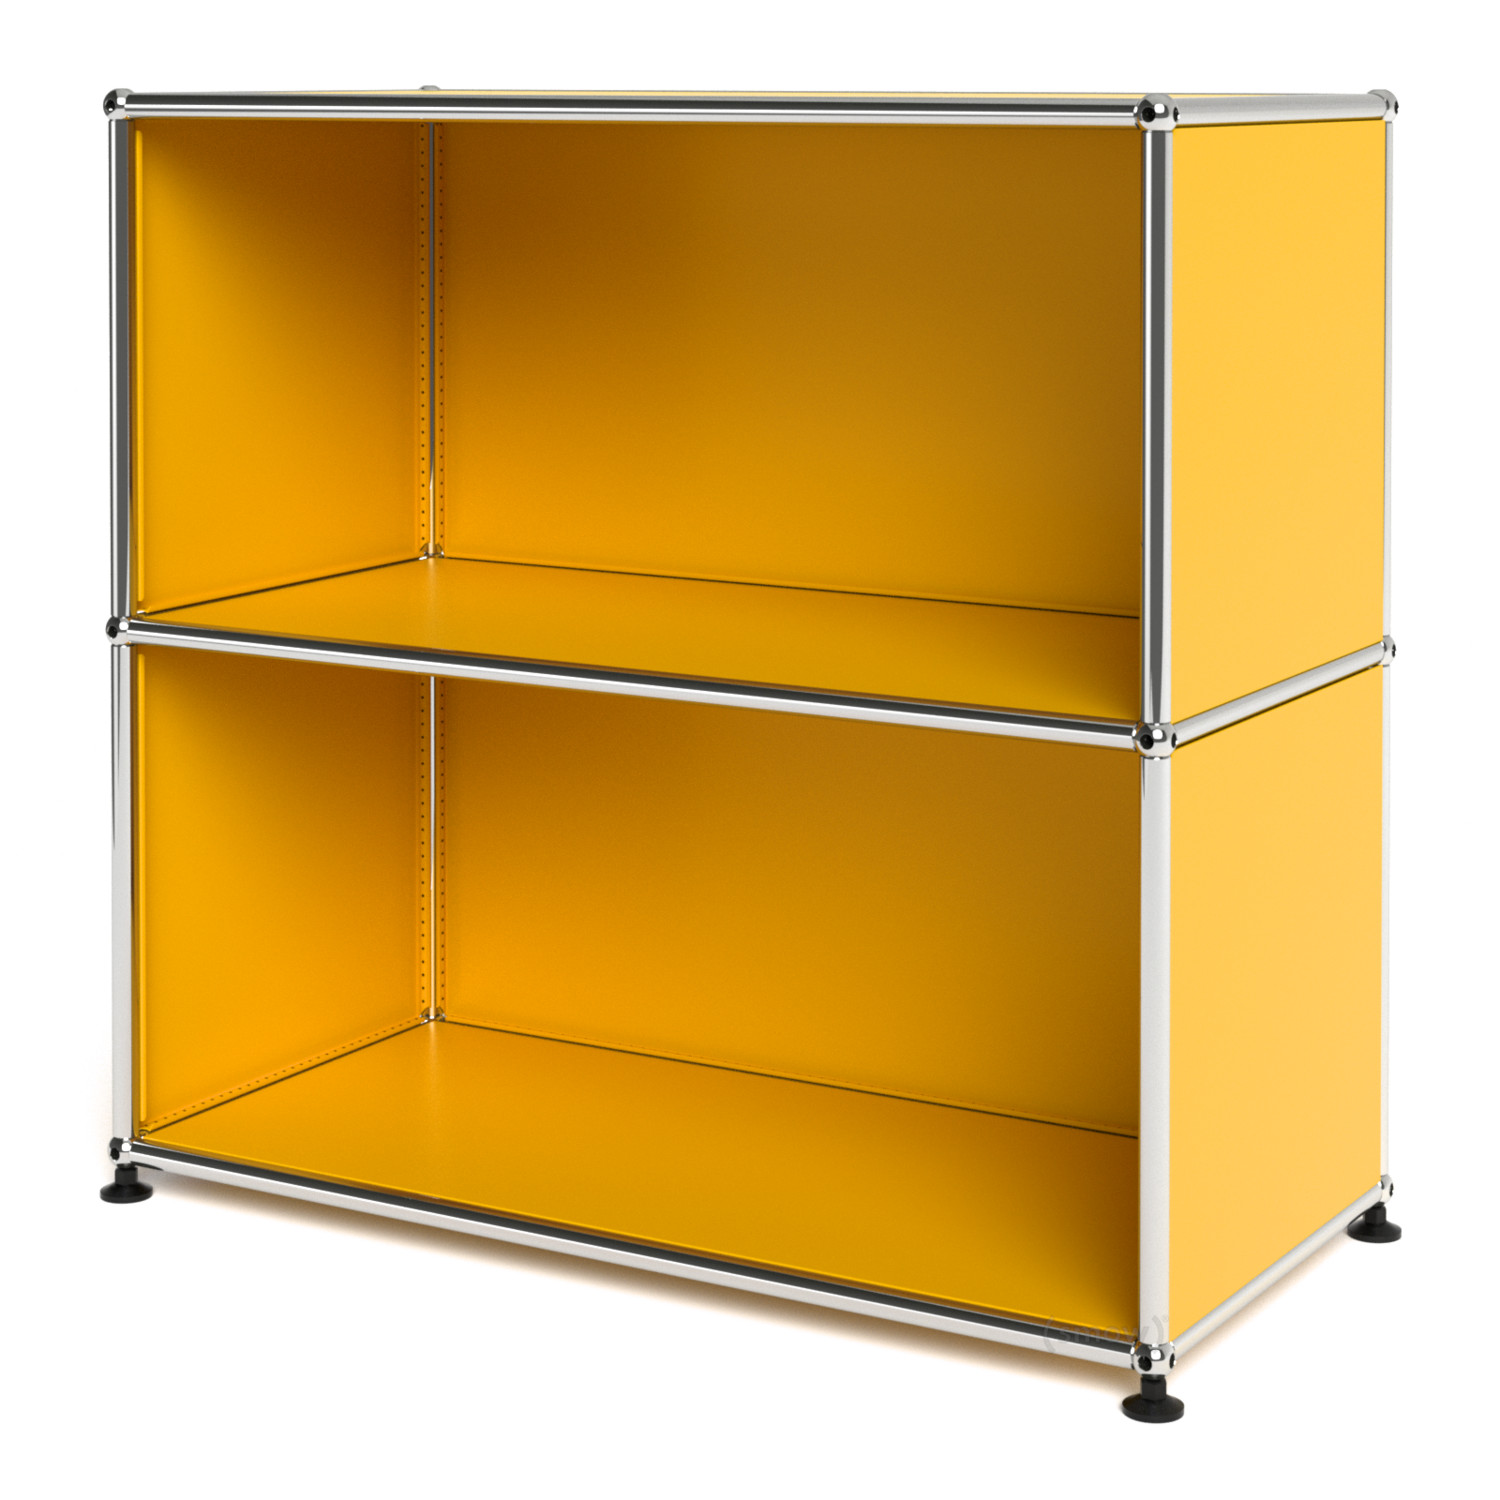 usm haller sideboard m open golden yellow ral 1004 by fritz haller paul sch rer designer. Black Bedroom Furniture Sets. Home Design Ideas